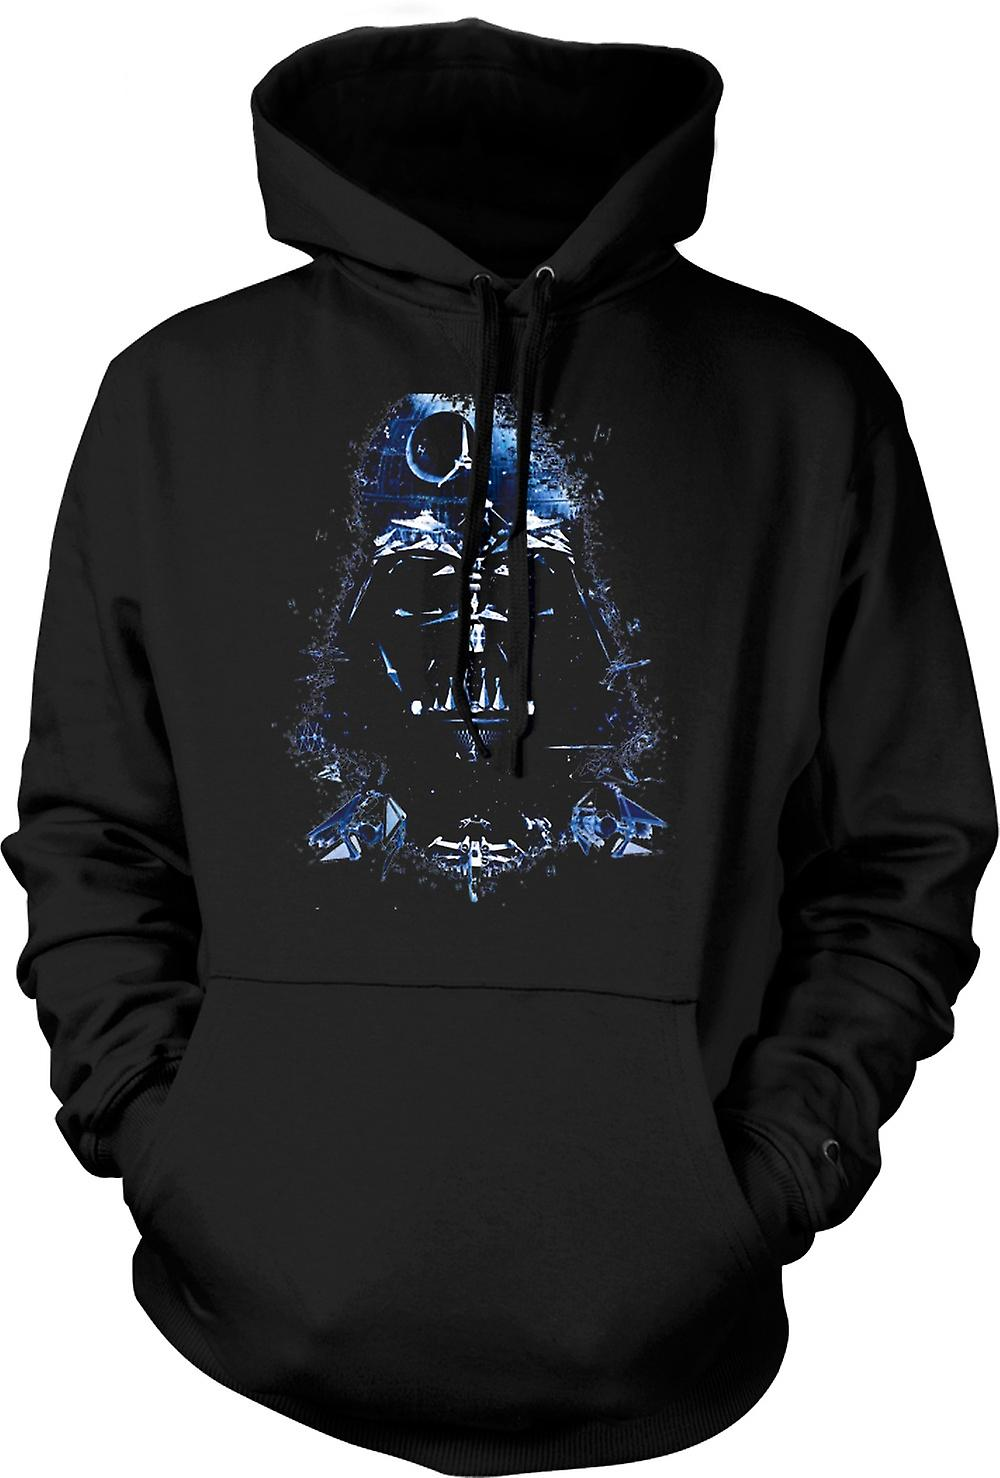 Mens Hoodie - Darth Vader - Death Star